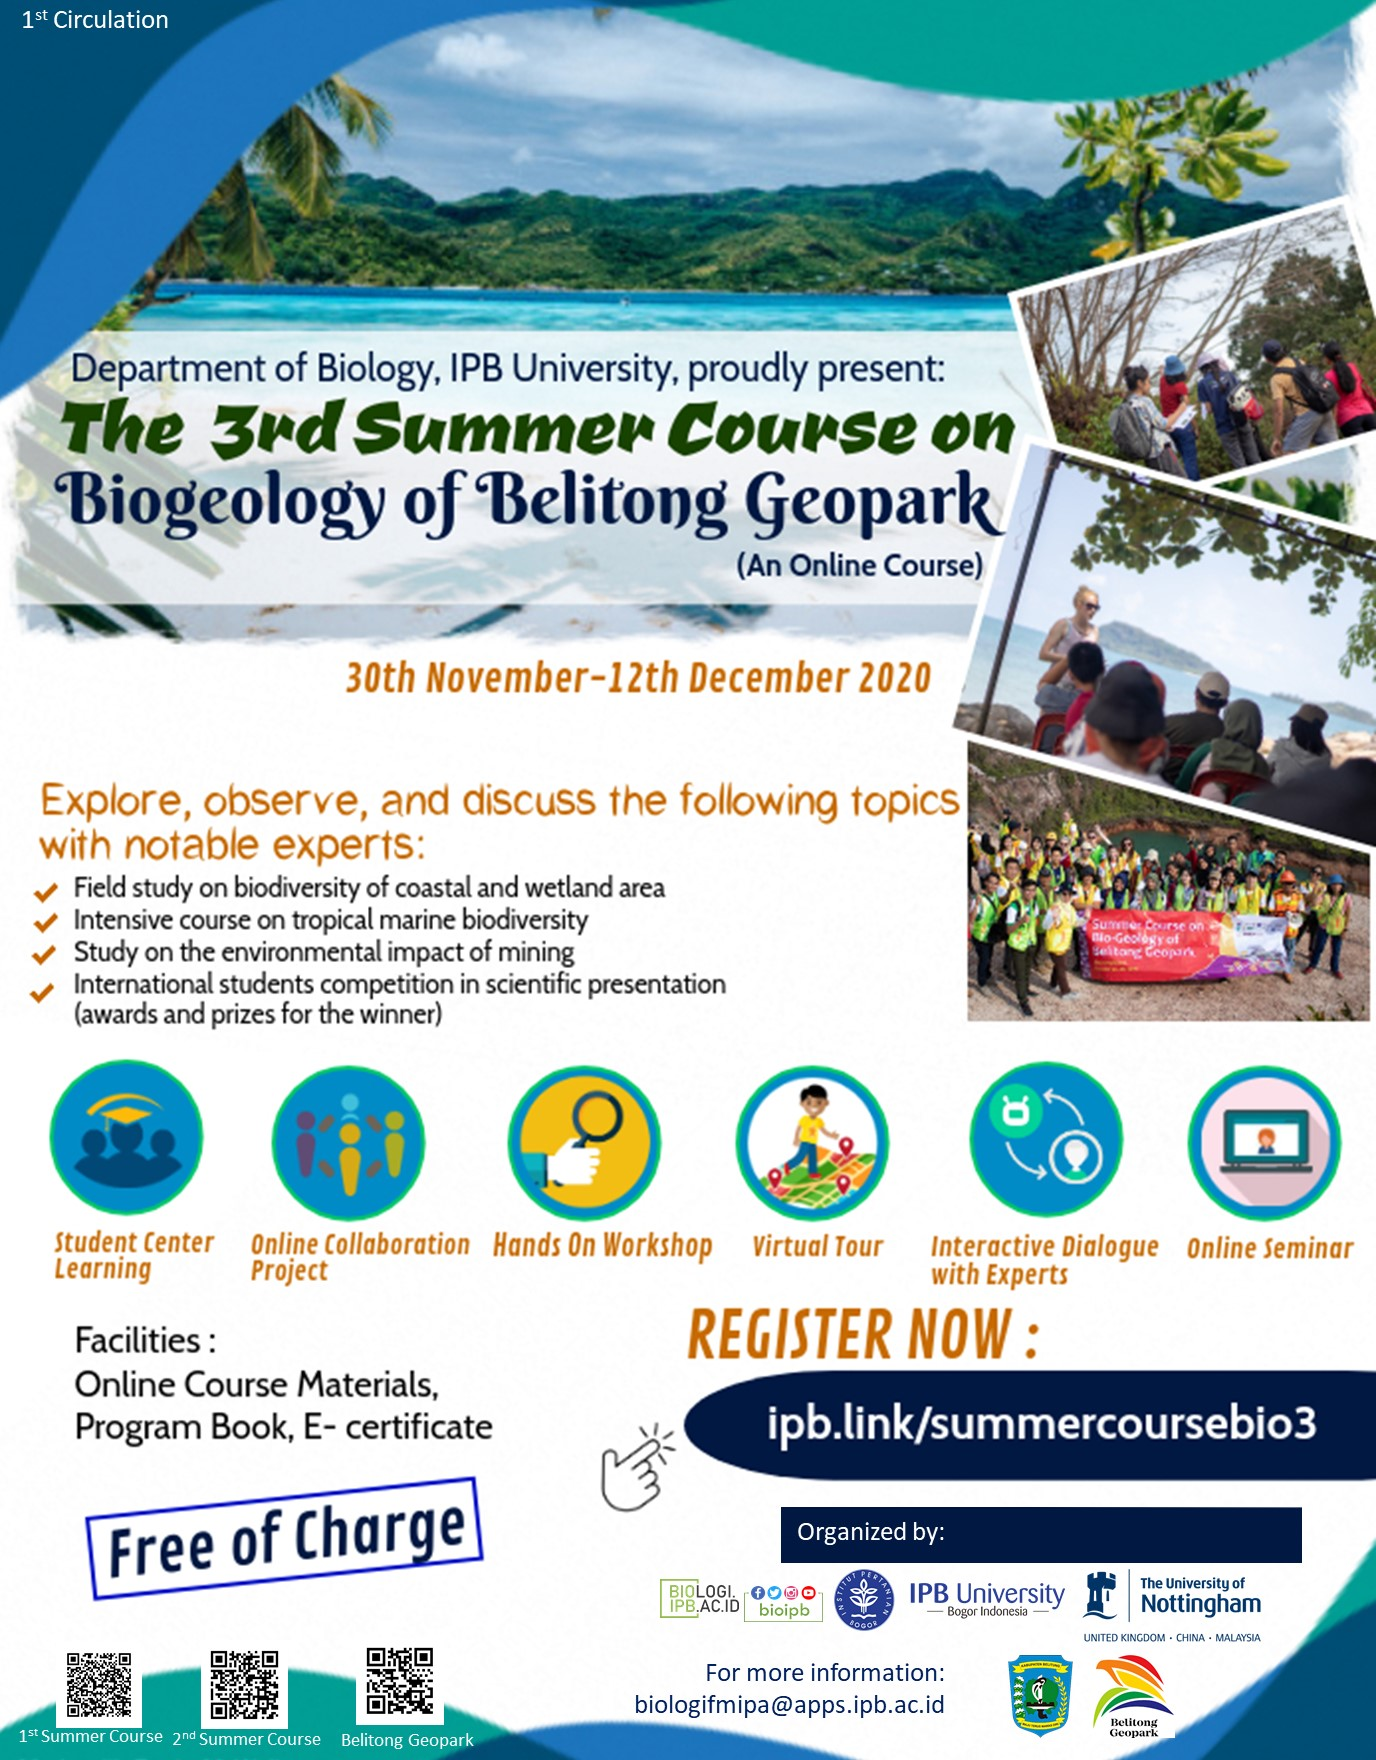 The 3rd Summer Course on Biogeology of Belitong Geopark